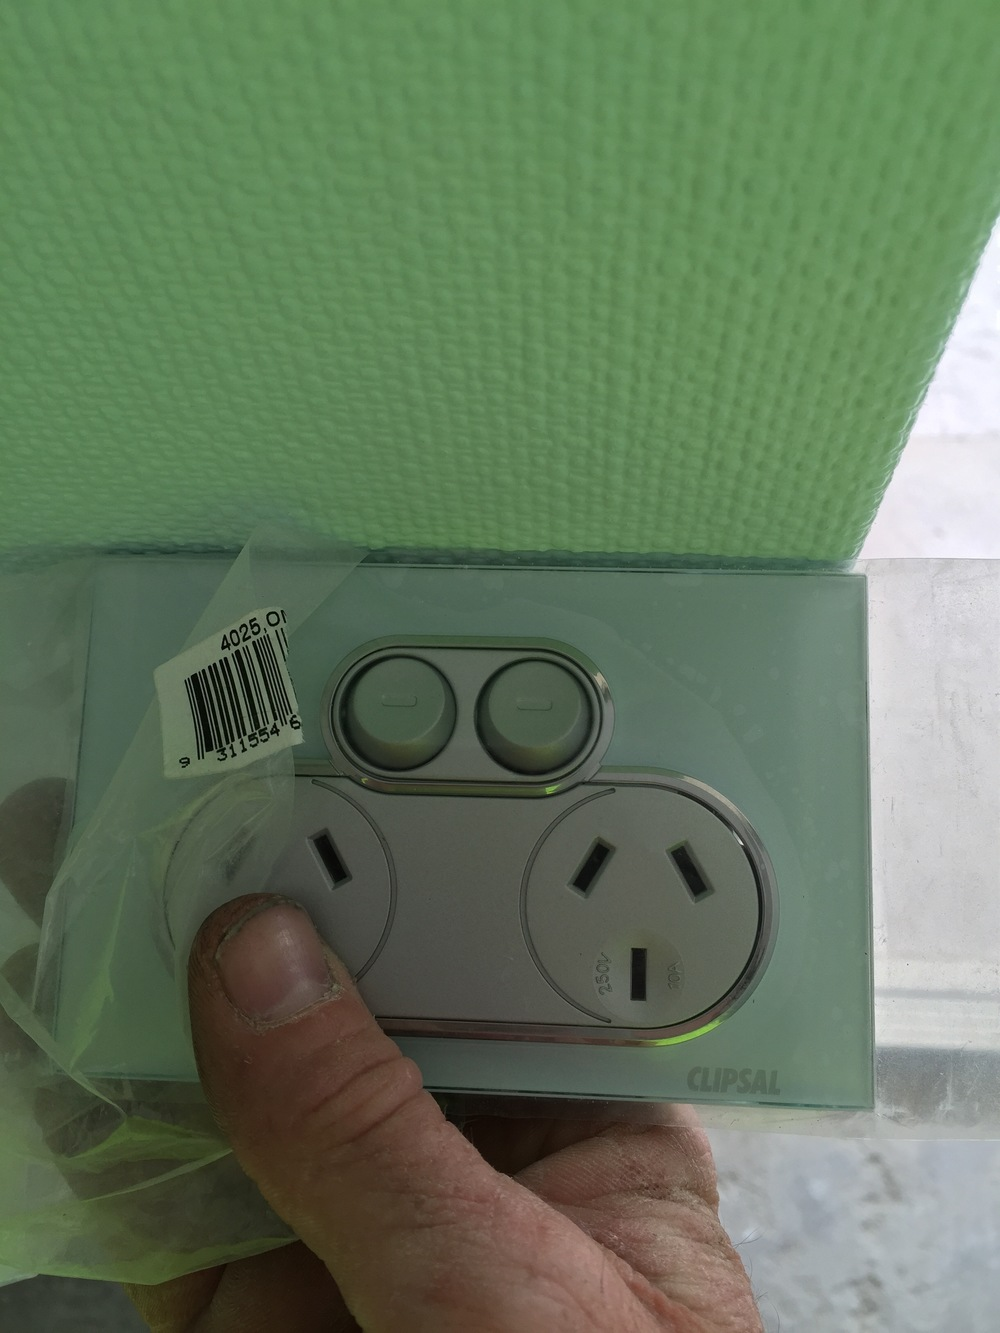 Power outlet installations